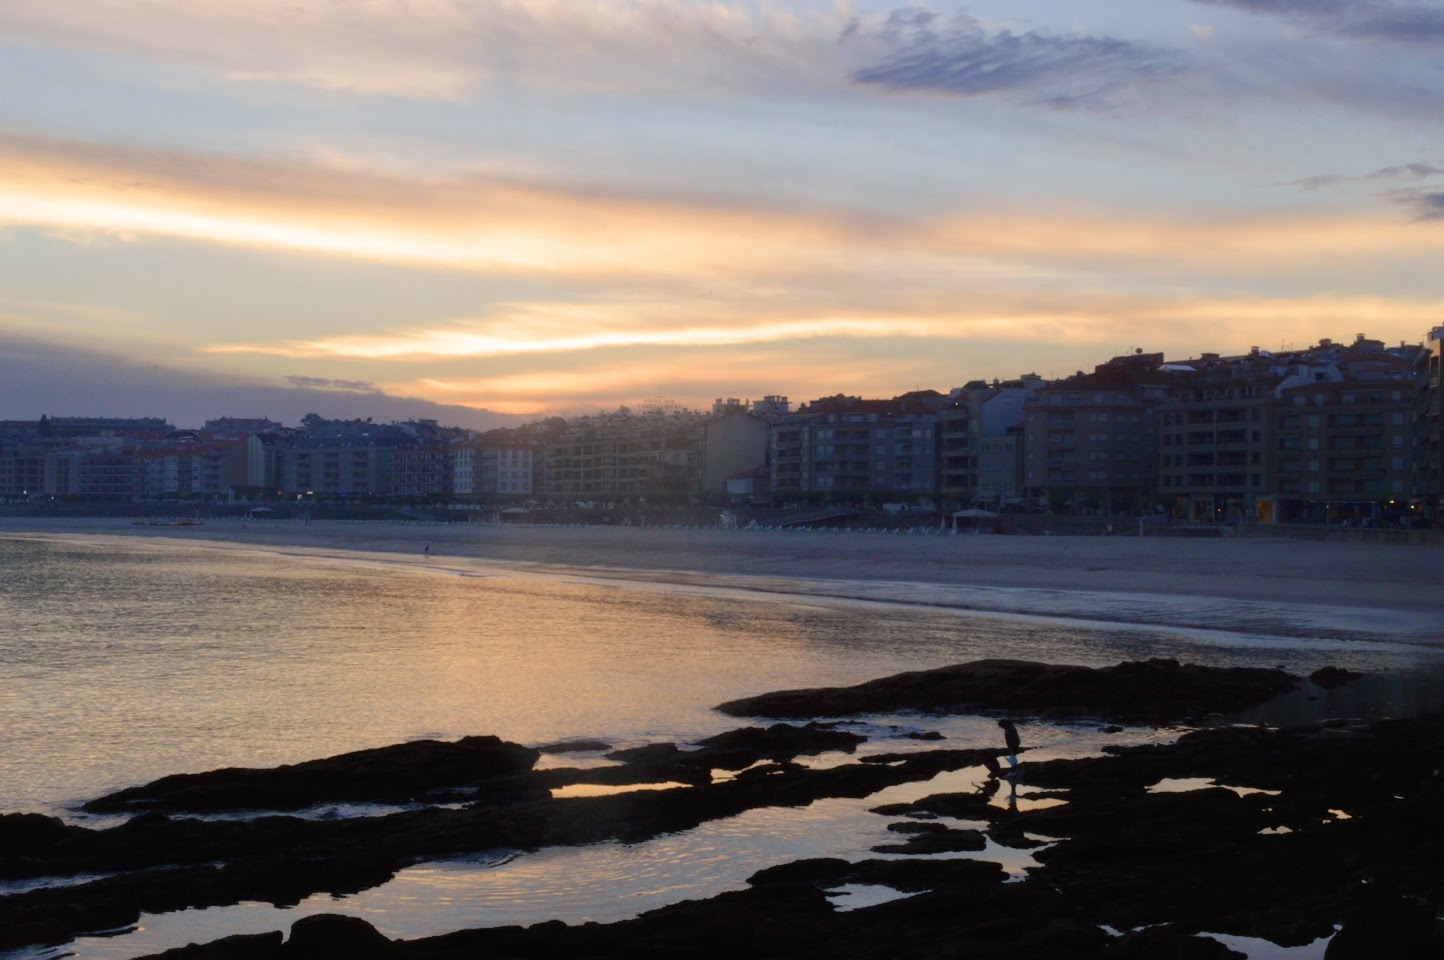 KIDdO Style: San Xenxo beach - Galicia